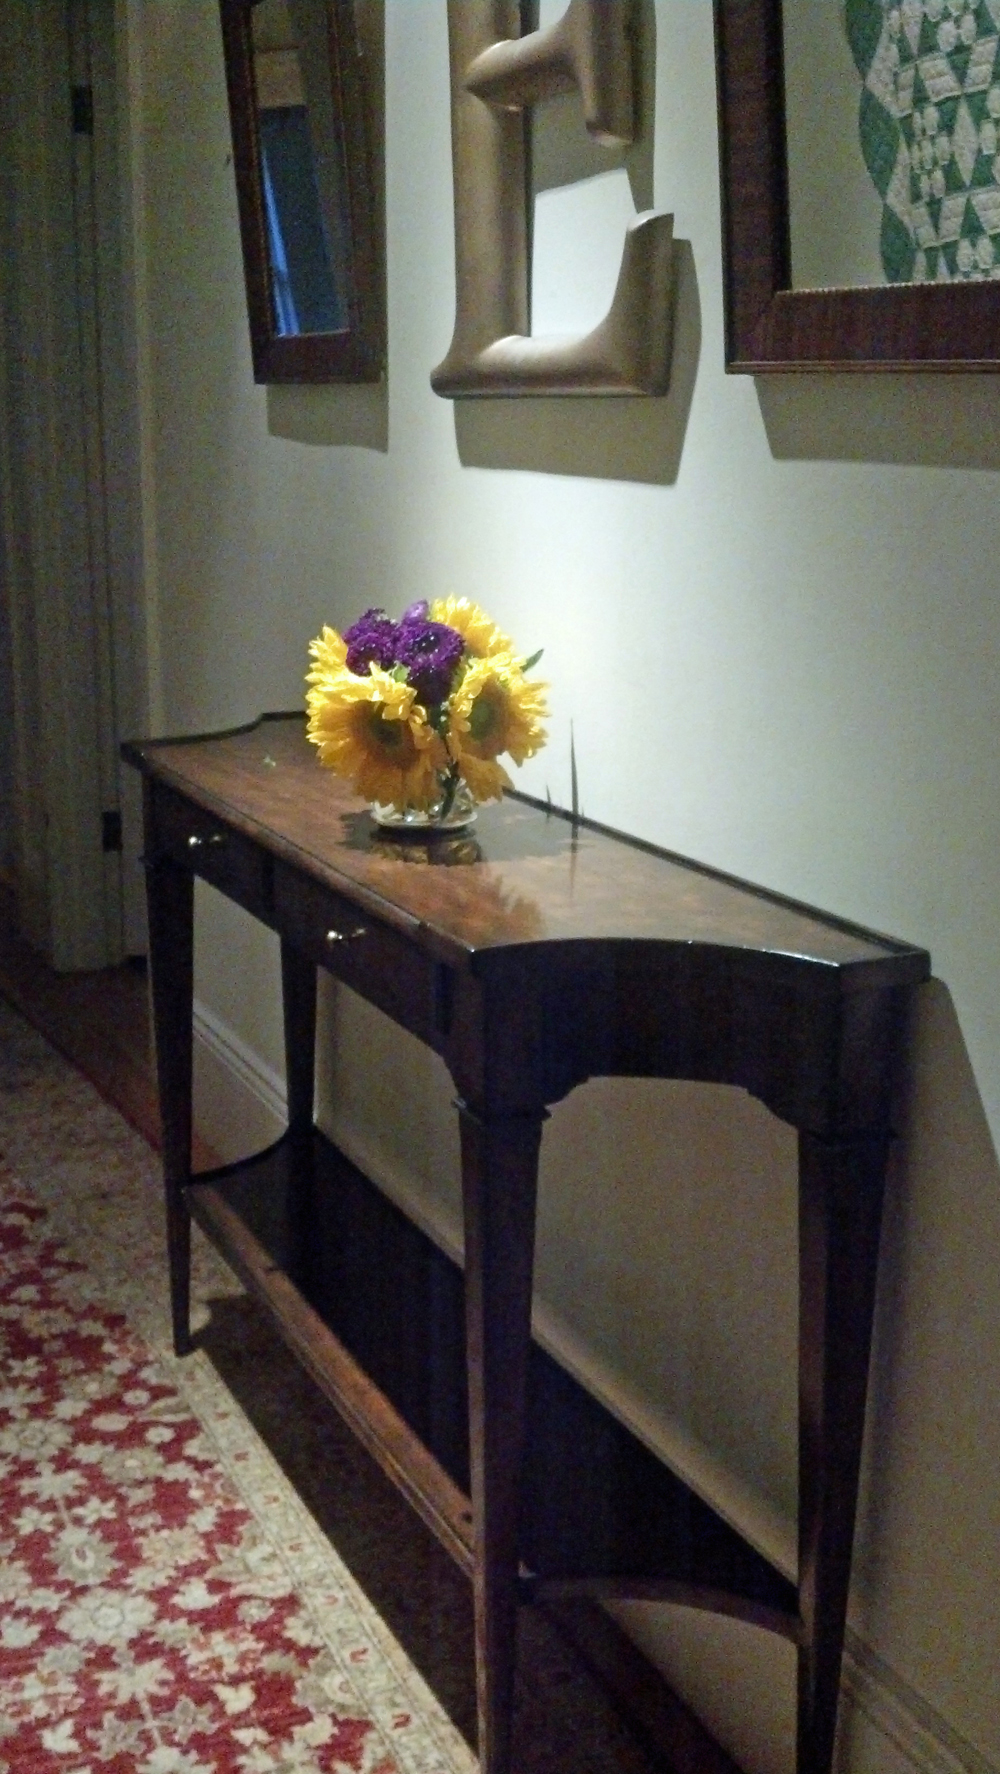 Antique inspirations in this reproduction Console Table from EuroLuxAntiques.com, in our client's hallway